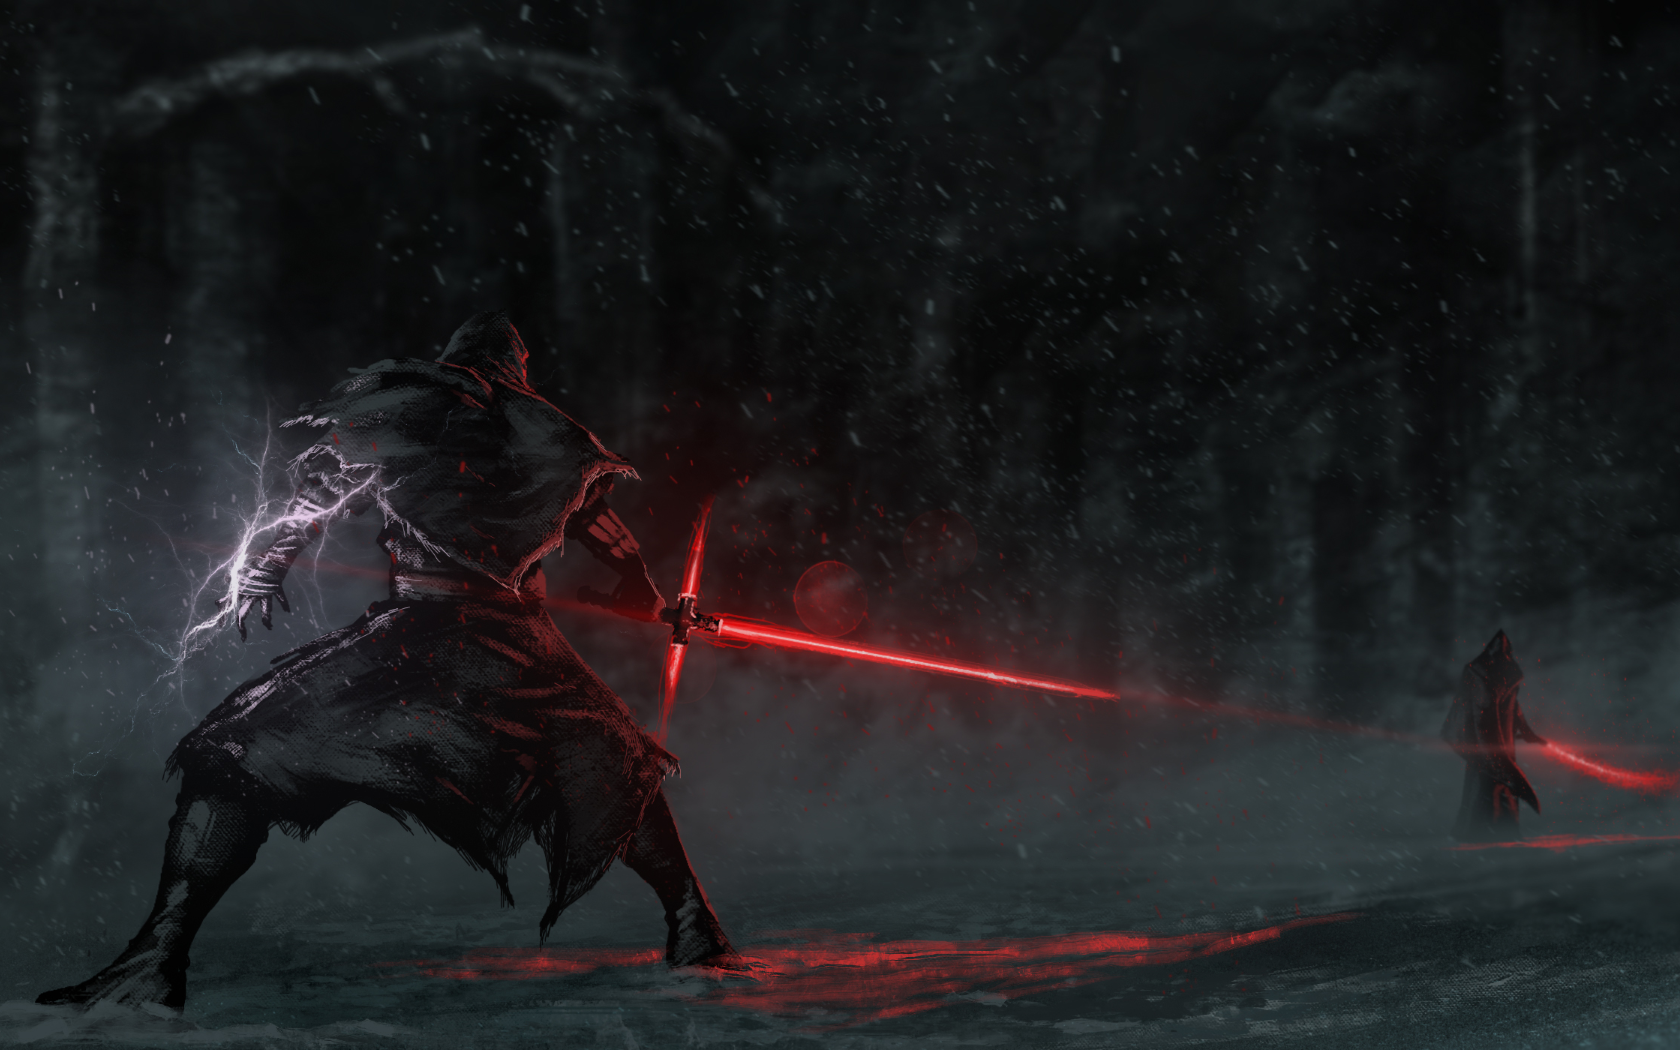 General 1680x1050 Star Wars Star Wars: The Force Awakens lightsaber artwork